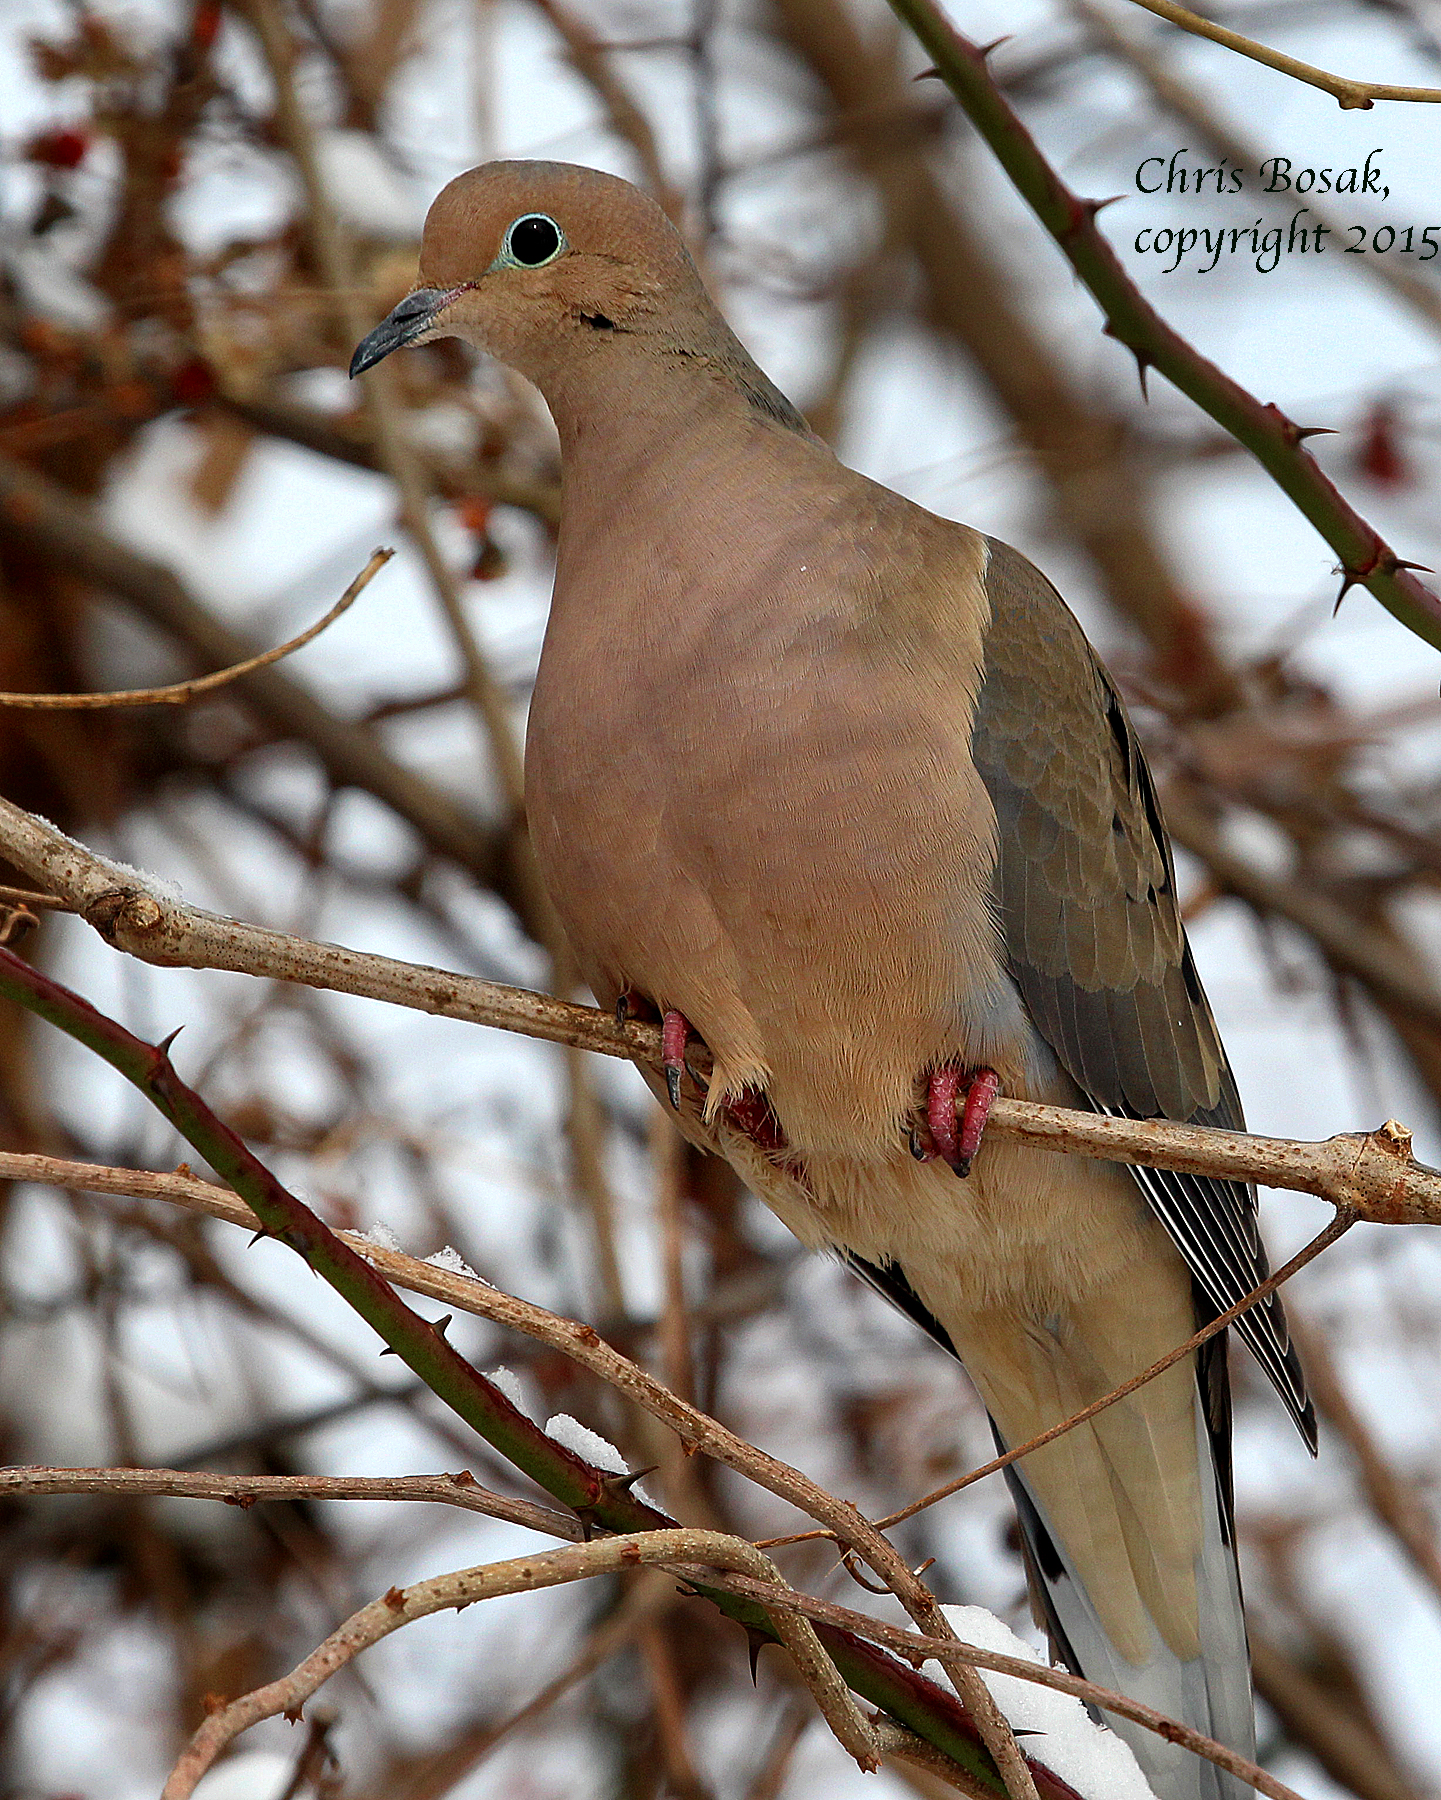 Photo by Chris Bosak A Mouning Dove perches in a tree after a New England snowfall in February 2015.